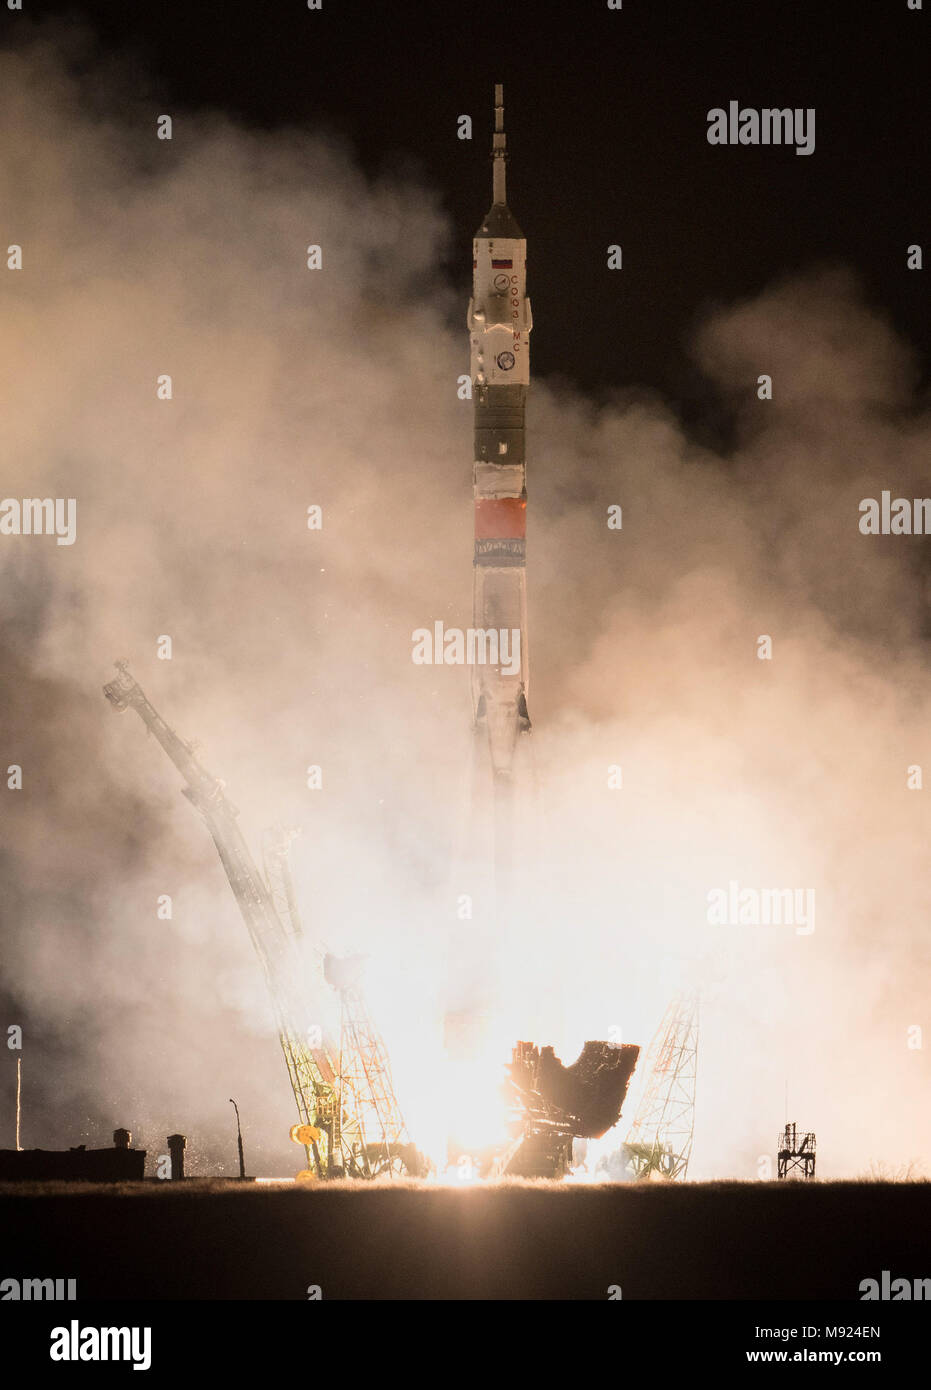 Baikonur Cosmodrome, Kazakhstan. 21st Mar, 2018.  The Russian Soyuz MS-08 rocket lifts off carrying the International Space Station Expedition 55 crew from the Baikonur Cosmodrome March 21, 2018 in Baikonur, Kazakhstan. Russian cosmonaut Oleg Artemyev of Roscosmos and American astronauts Ricky Arnold and Drew Feustel of NASA will spend the next five months living and working aboard the International Space Station. Credit: Planetpix/Alamy Live News - Stock Image